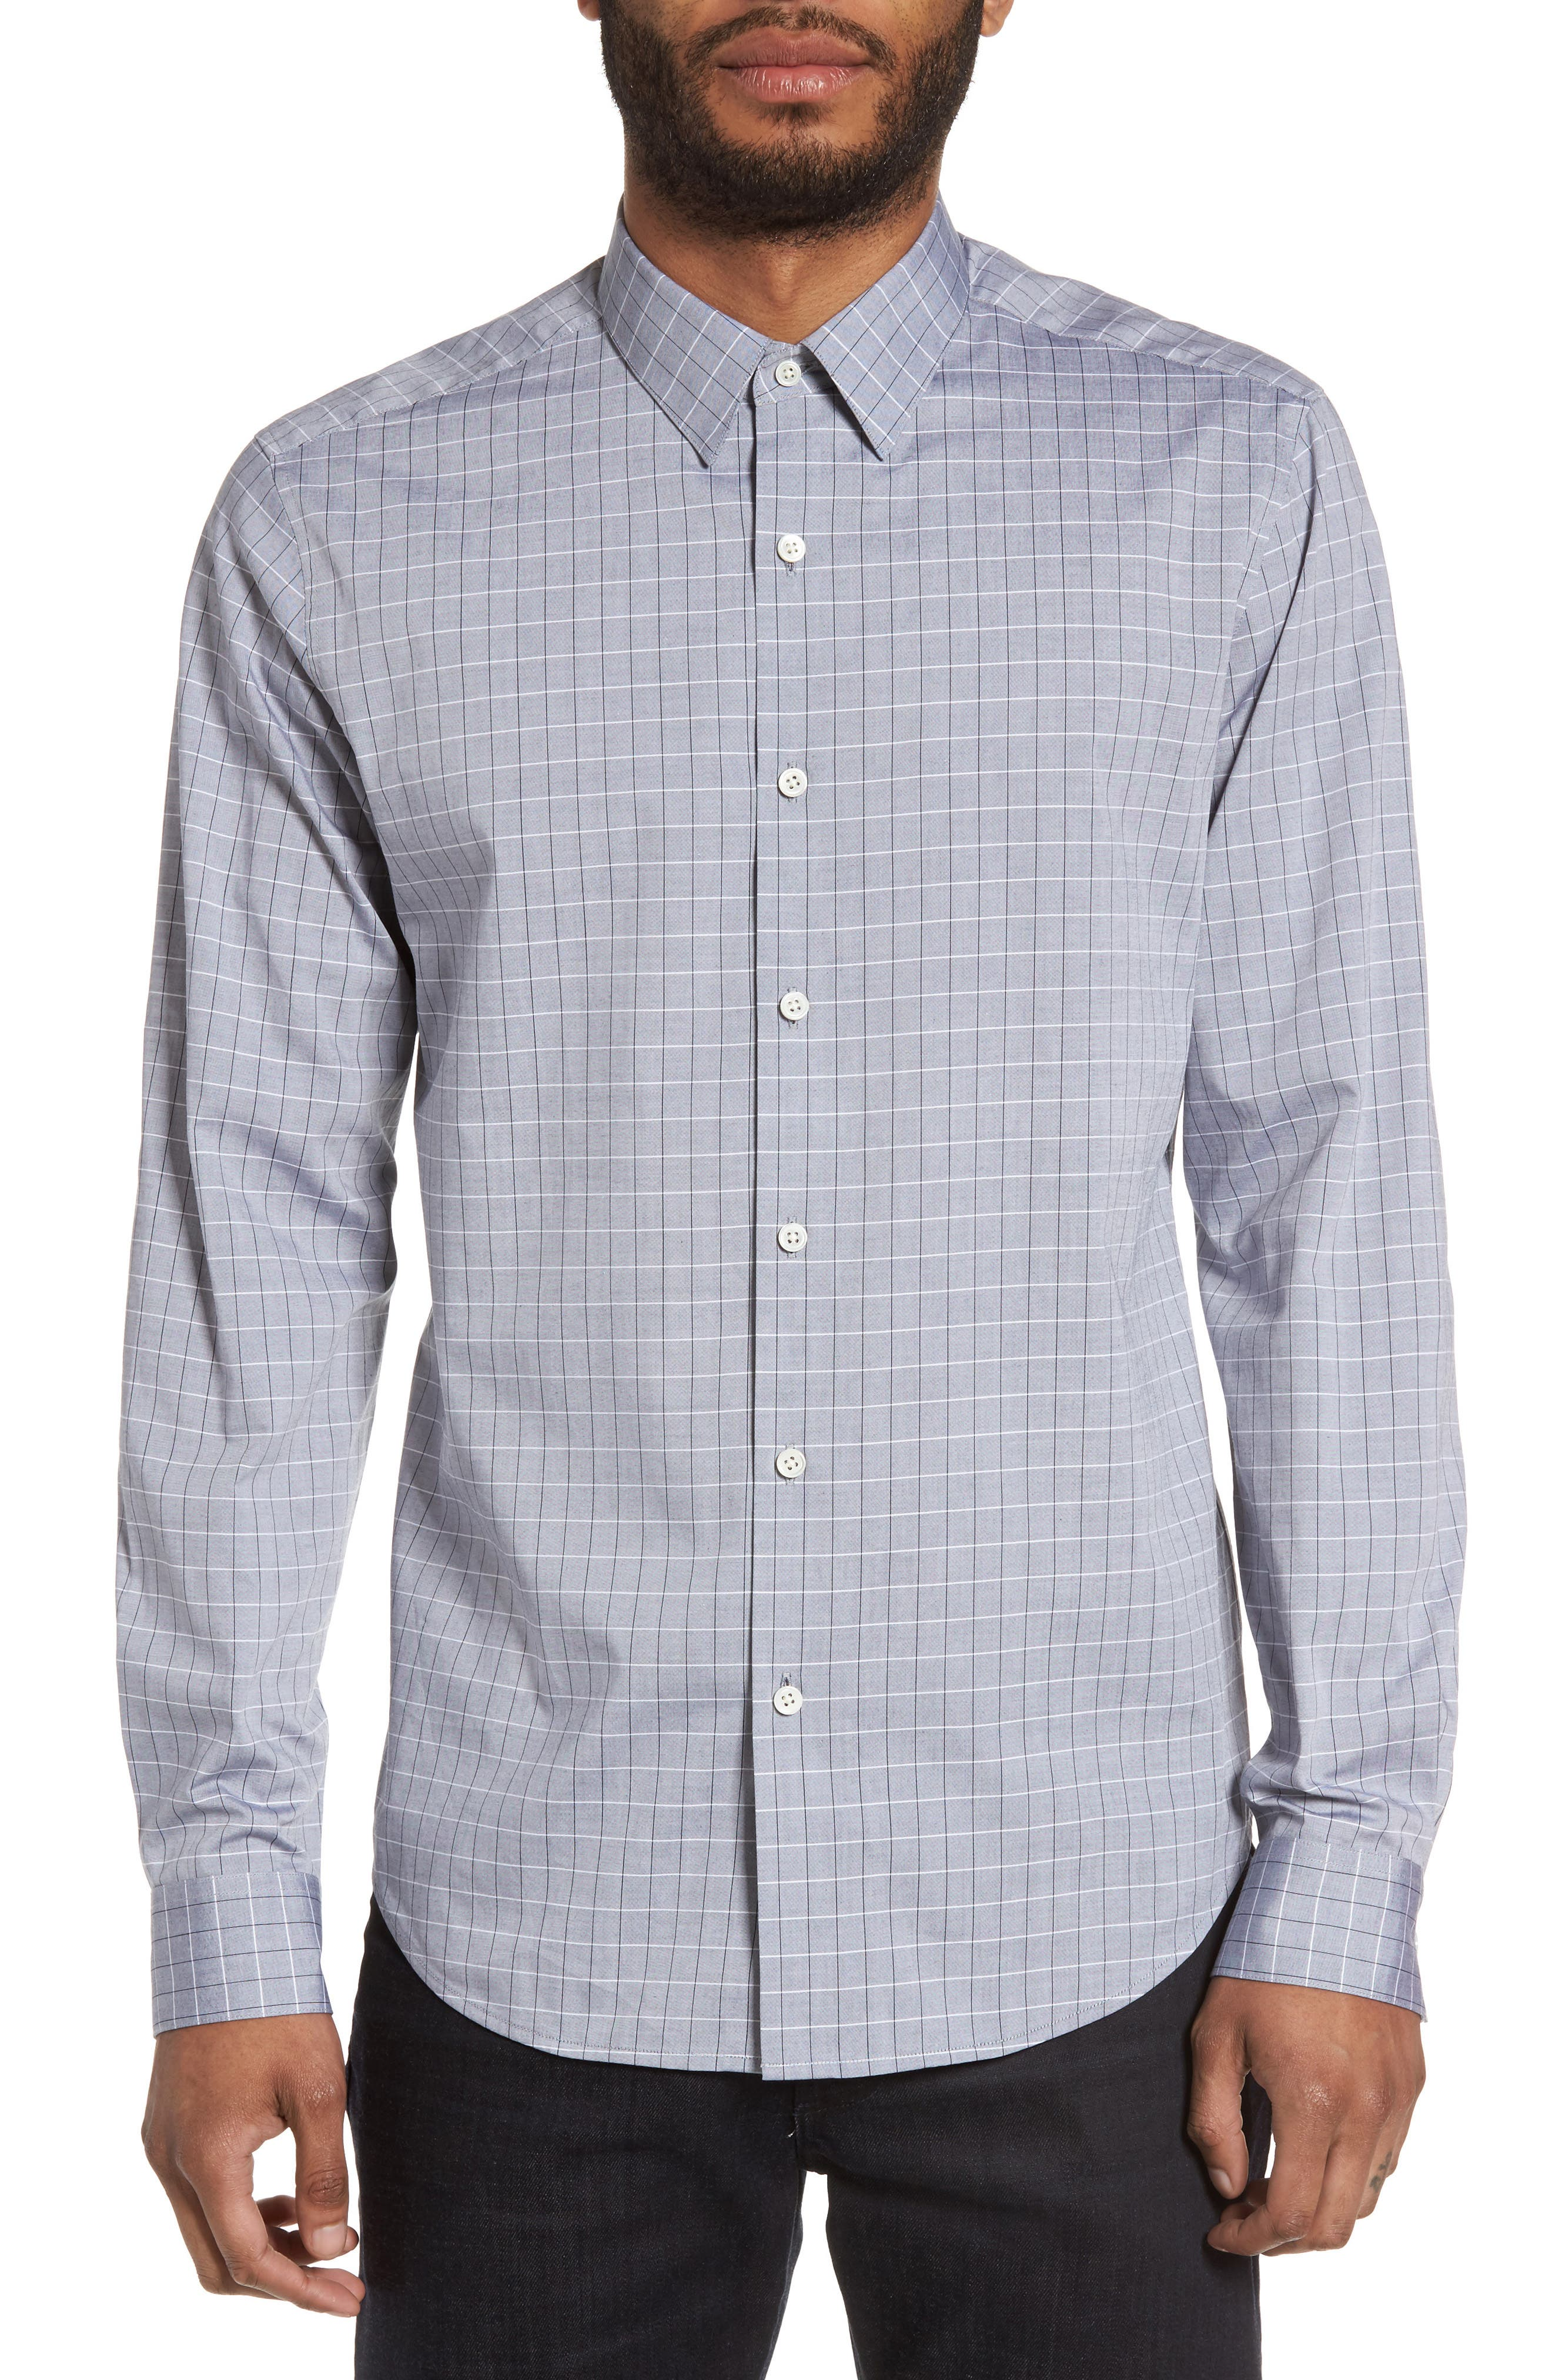 Theory Sylvain Oxford Trim Fit Grid Sport Shirt